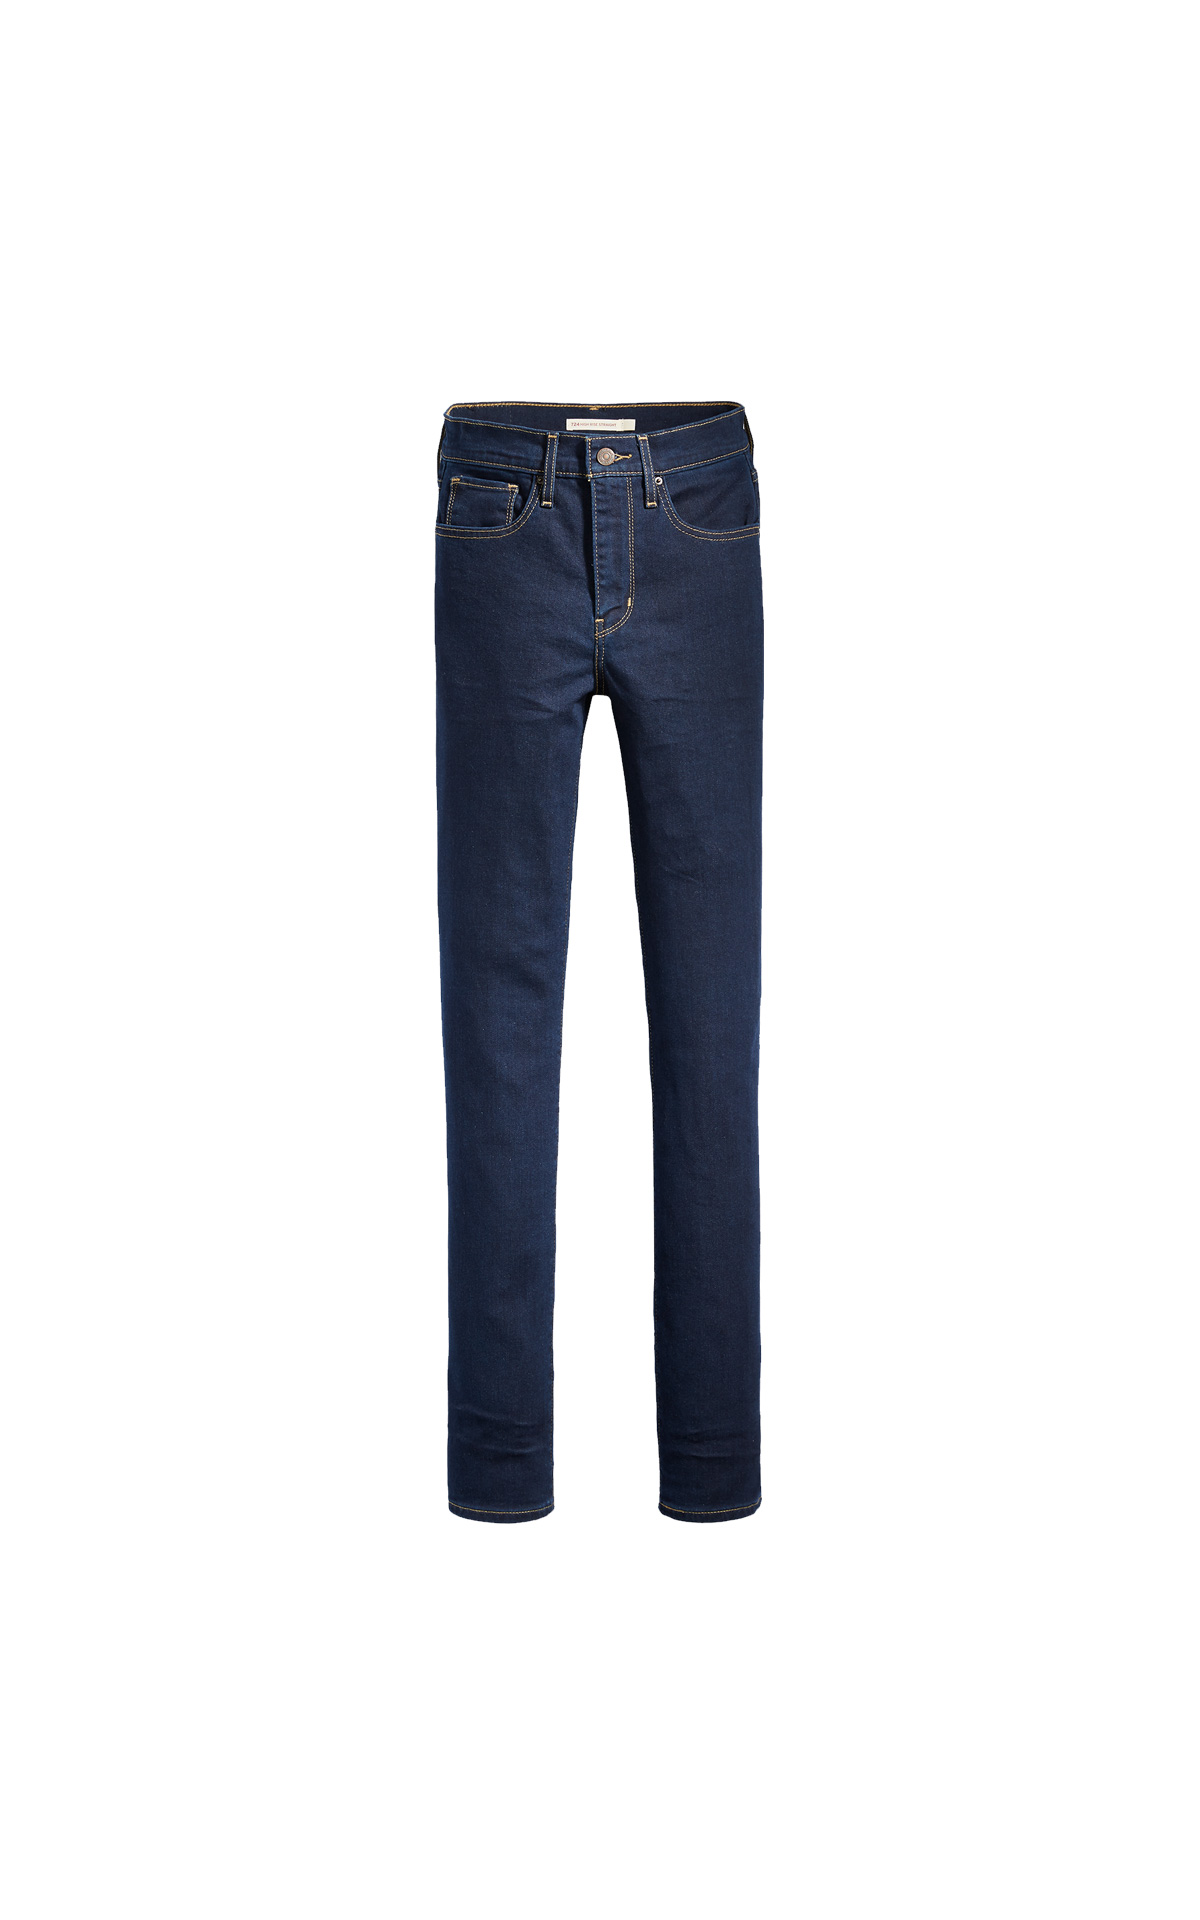 724 high rise straight jeans for woman Levi's